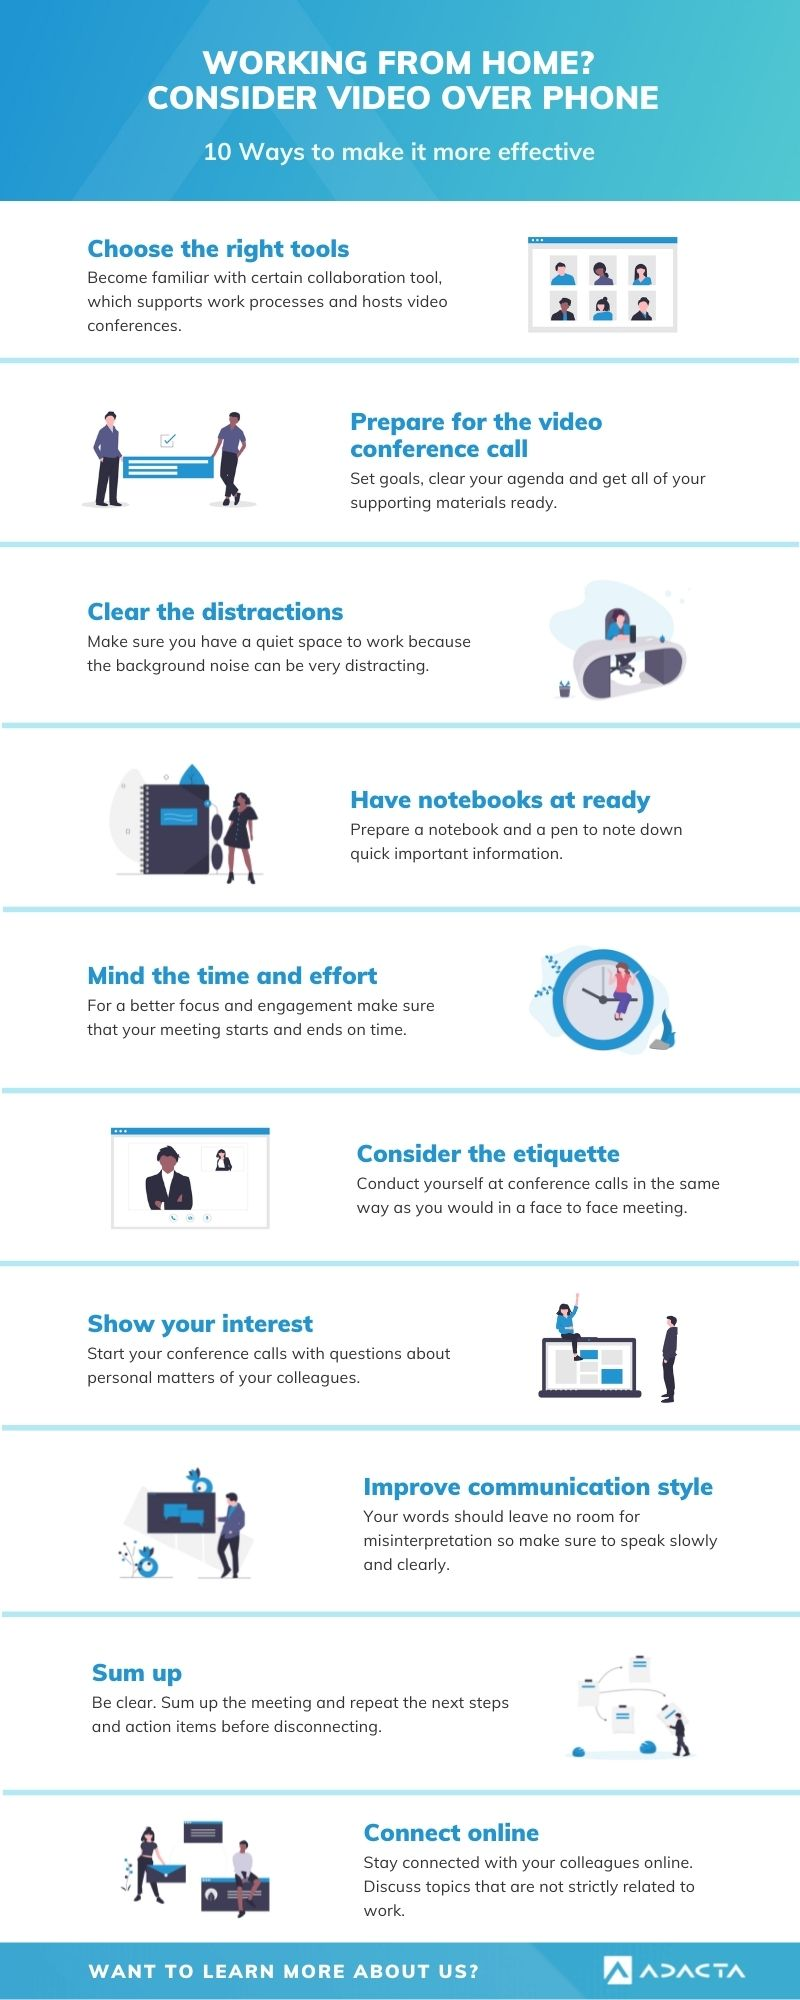 adacta-infographics-working-from-home